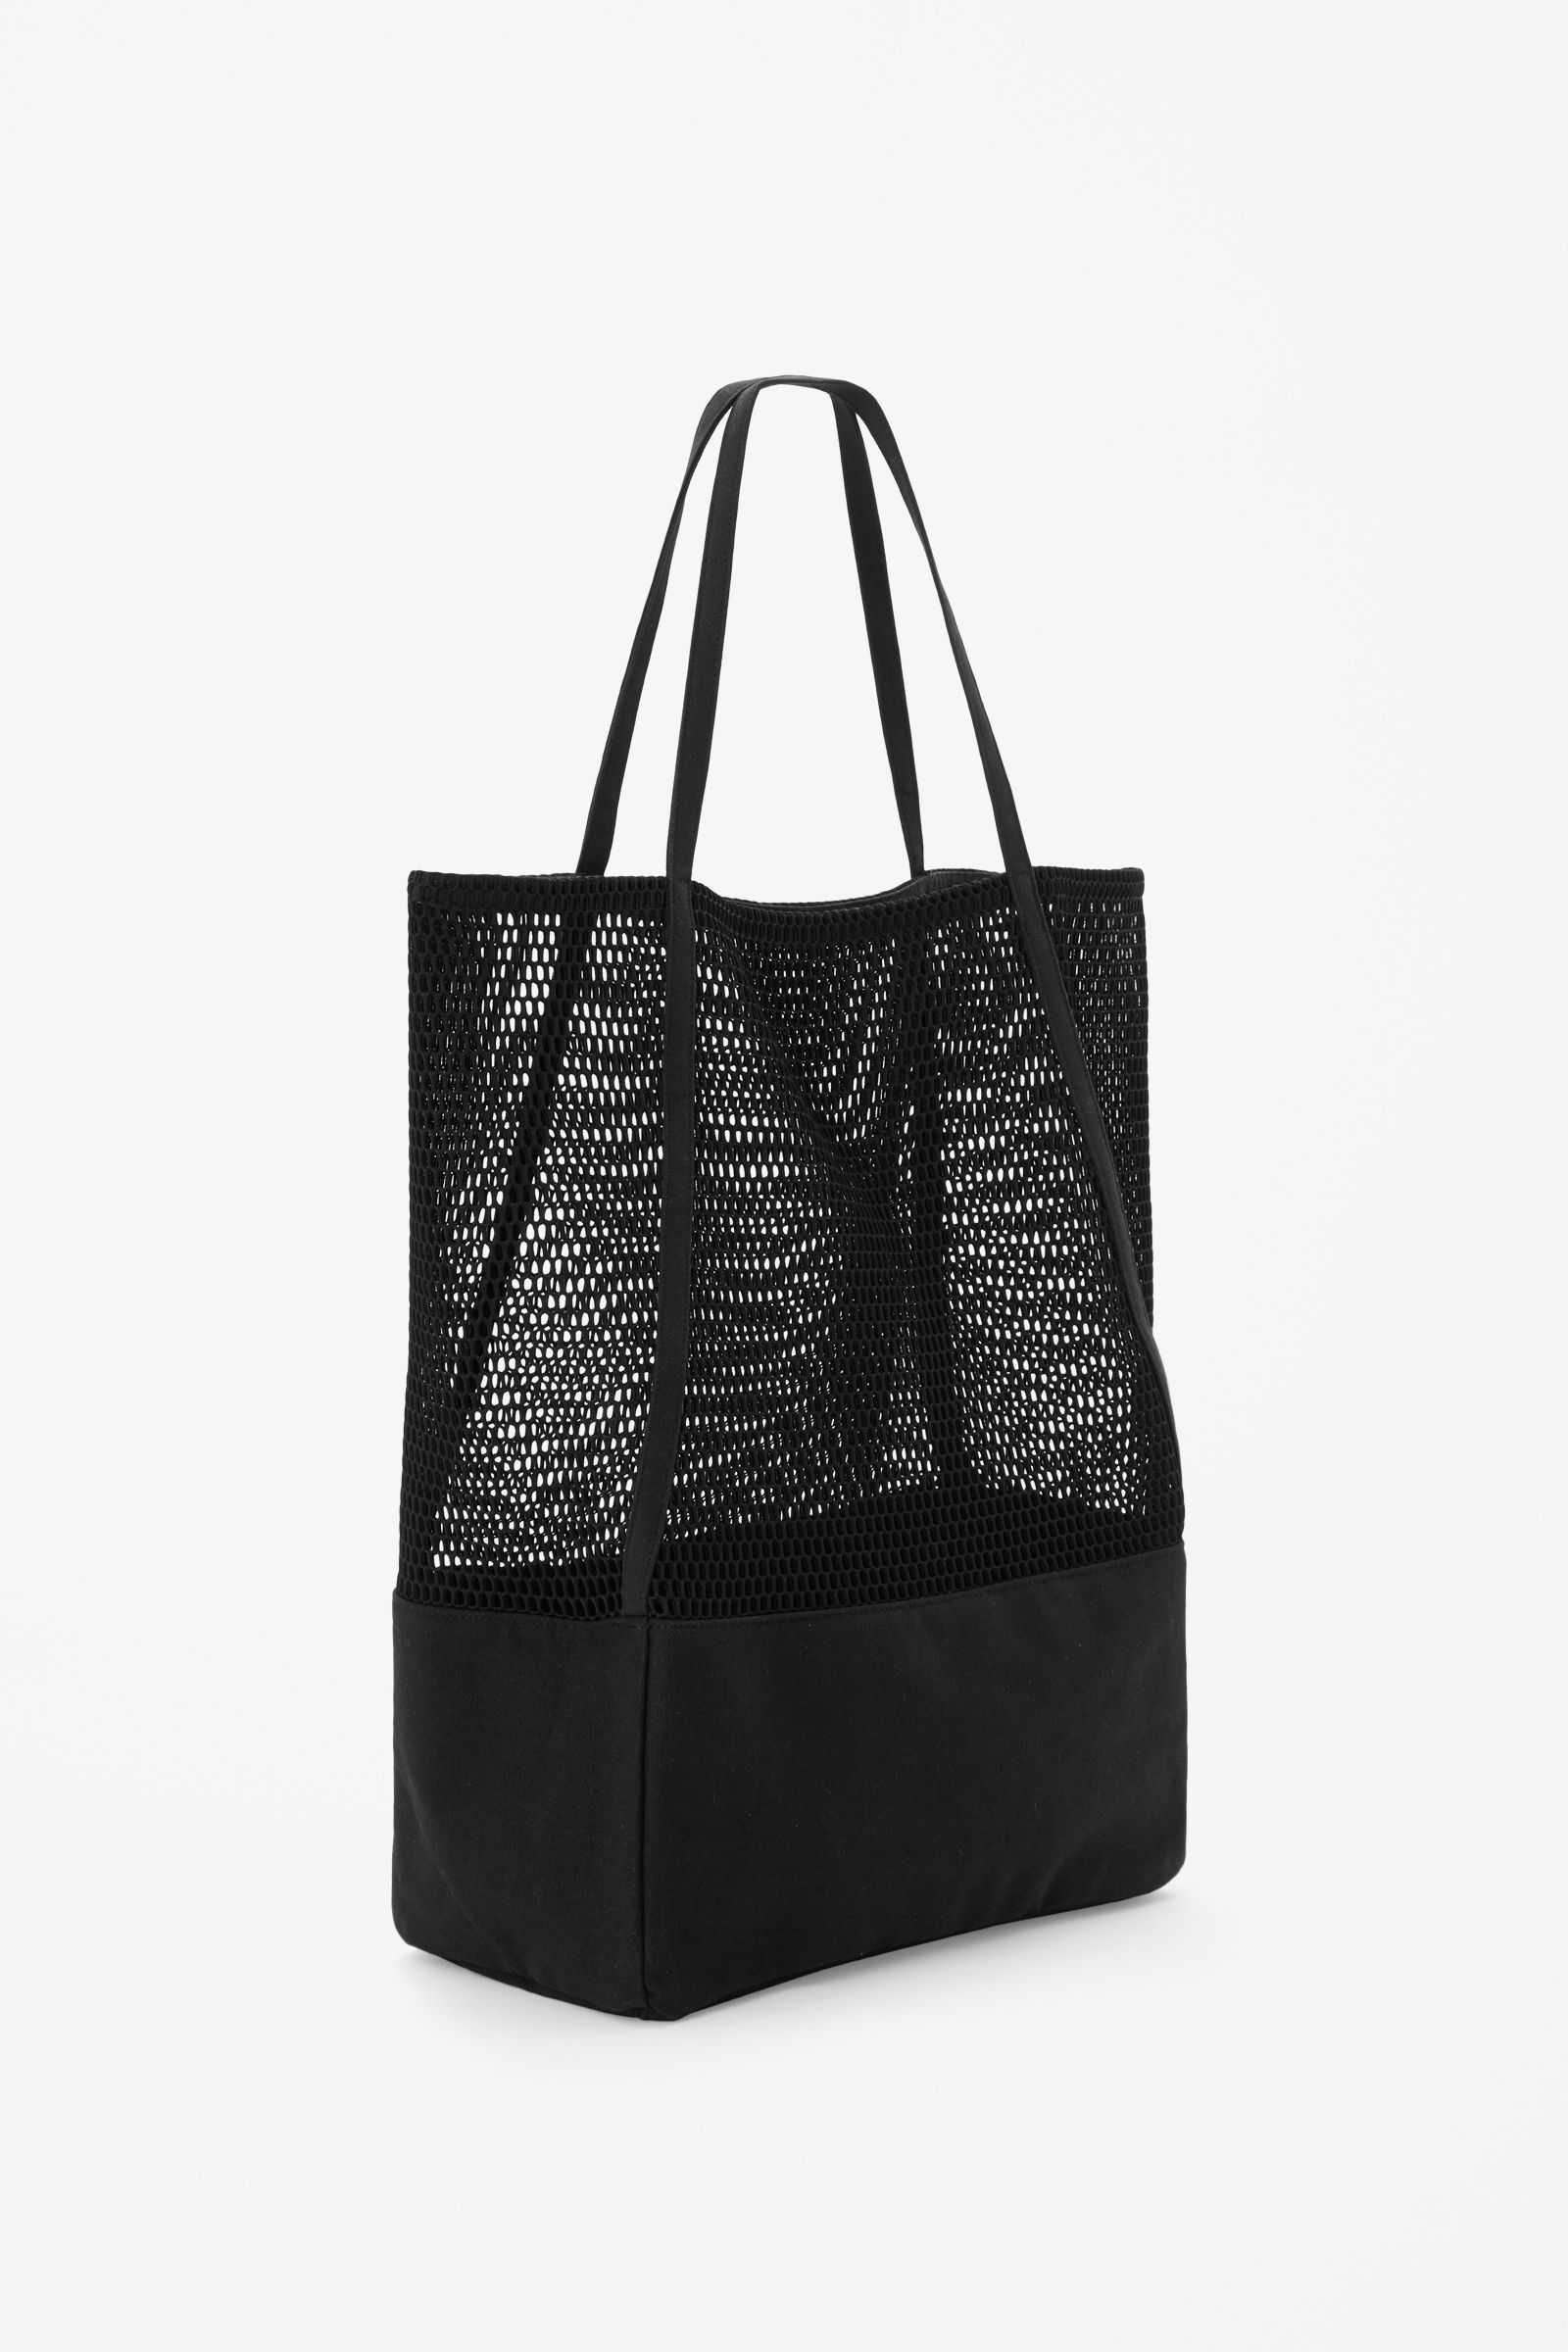 Download Pin On Bags Wpf Fashion